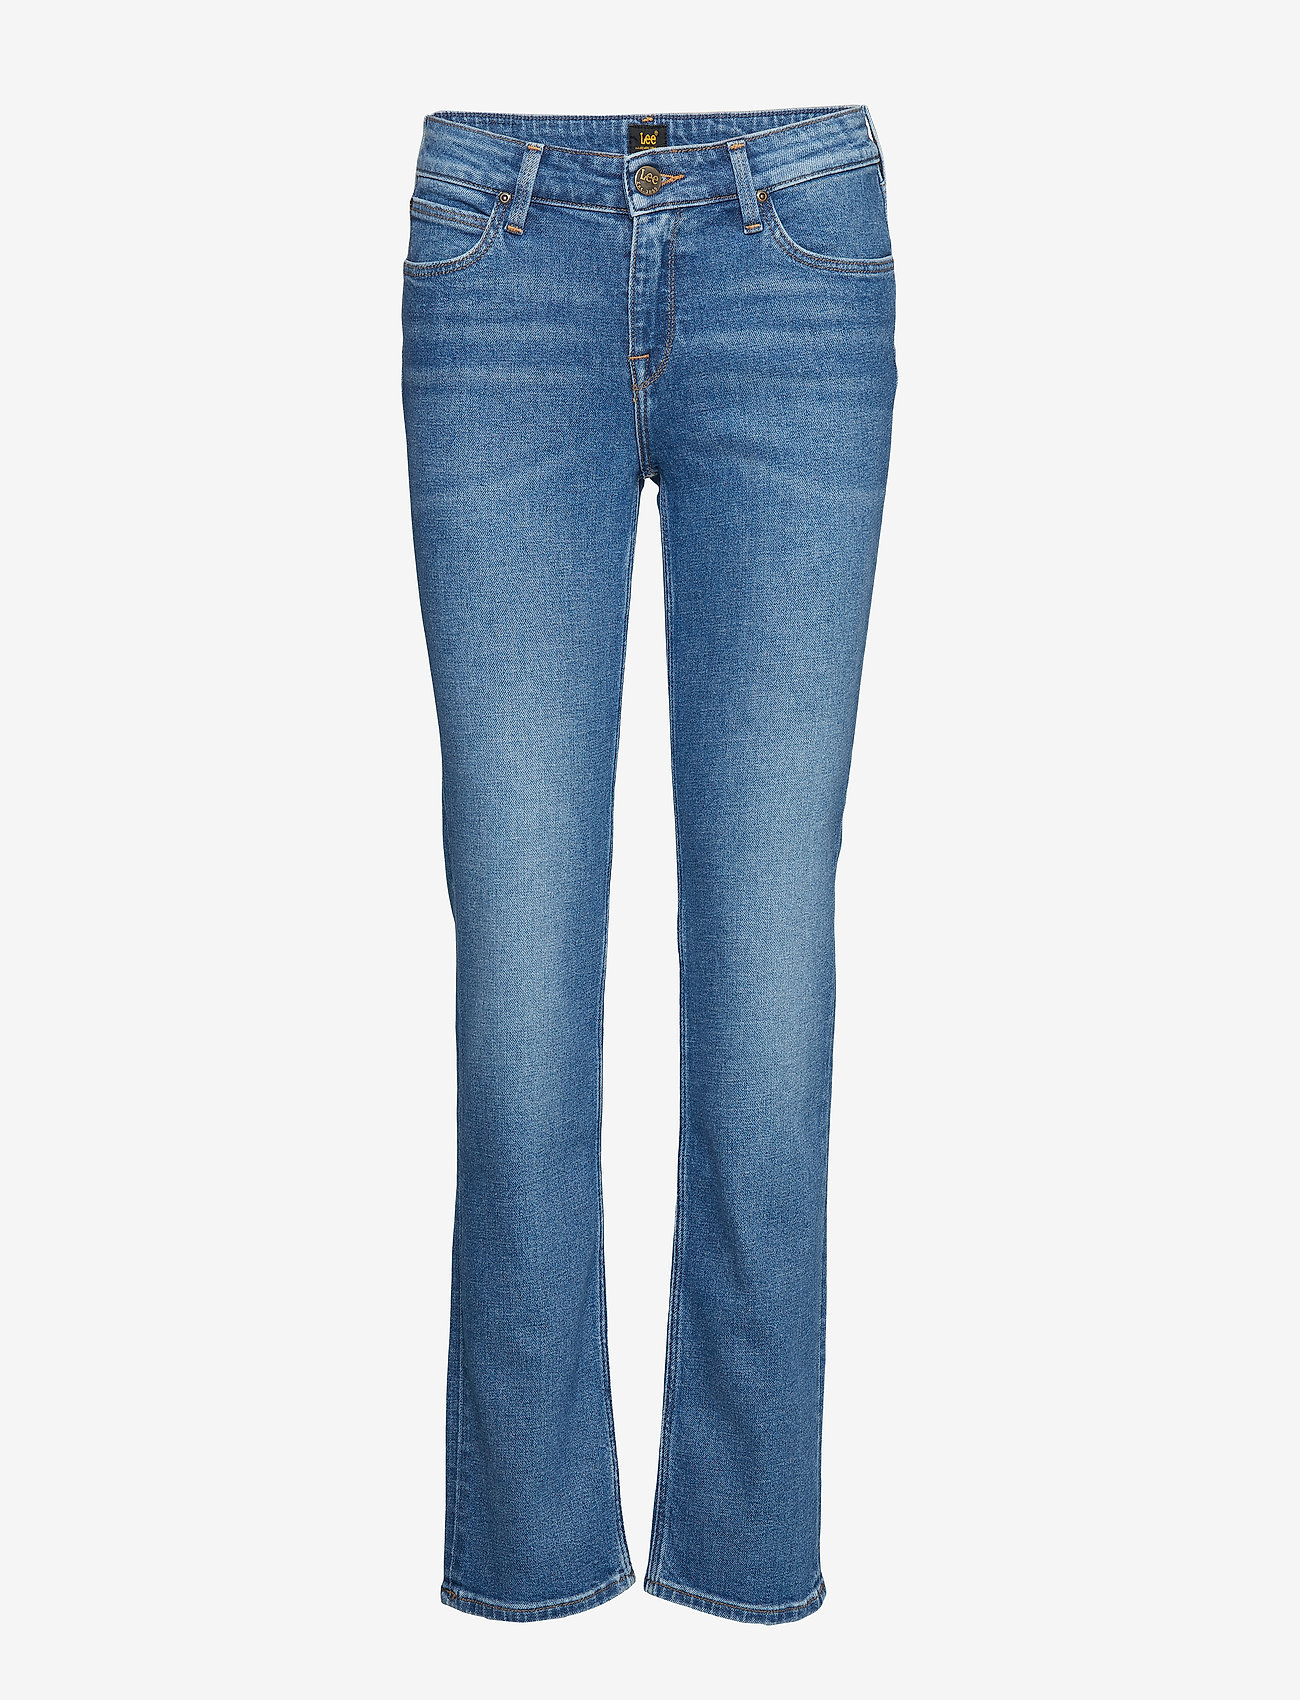 Lee Jeans - MARION STRAIGHT - straight jeans - mid hackett - 1